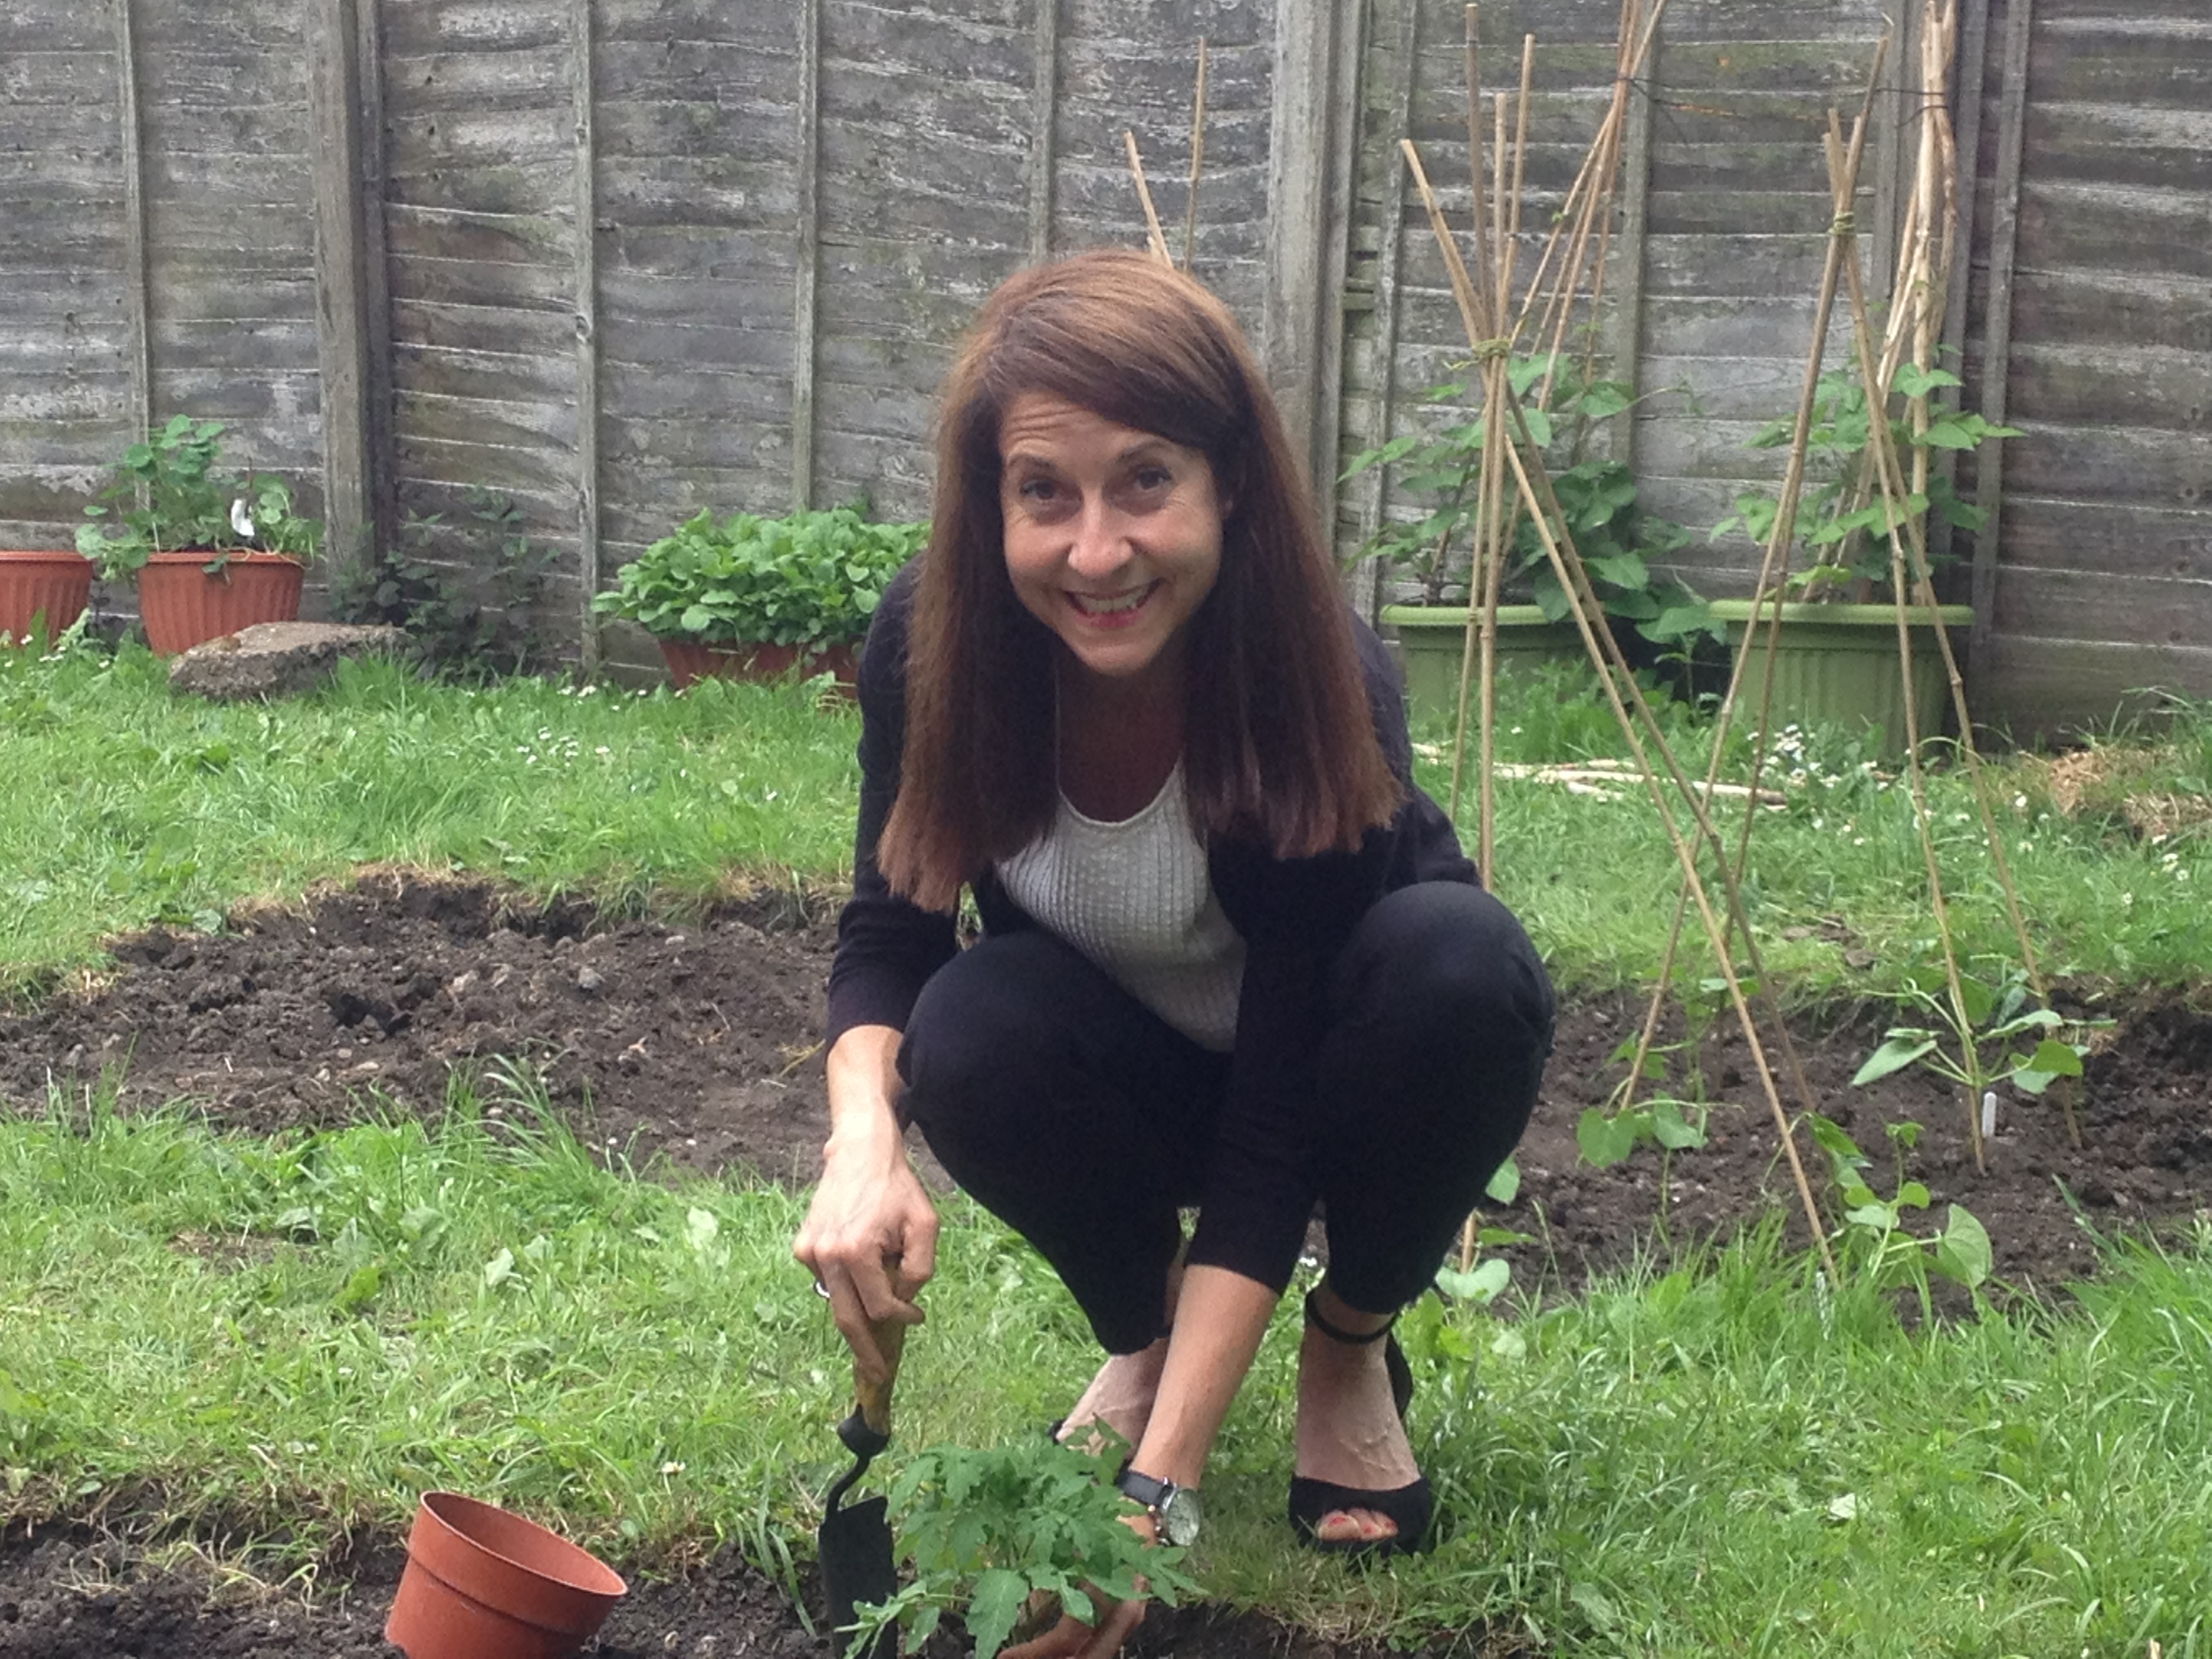 Liz planting tomatoes at Beaumont Lodge Garden Project